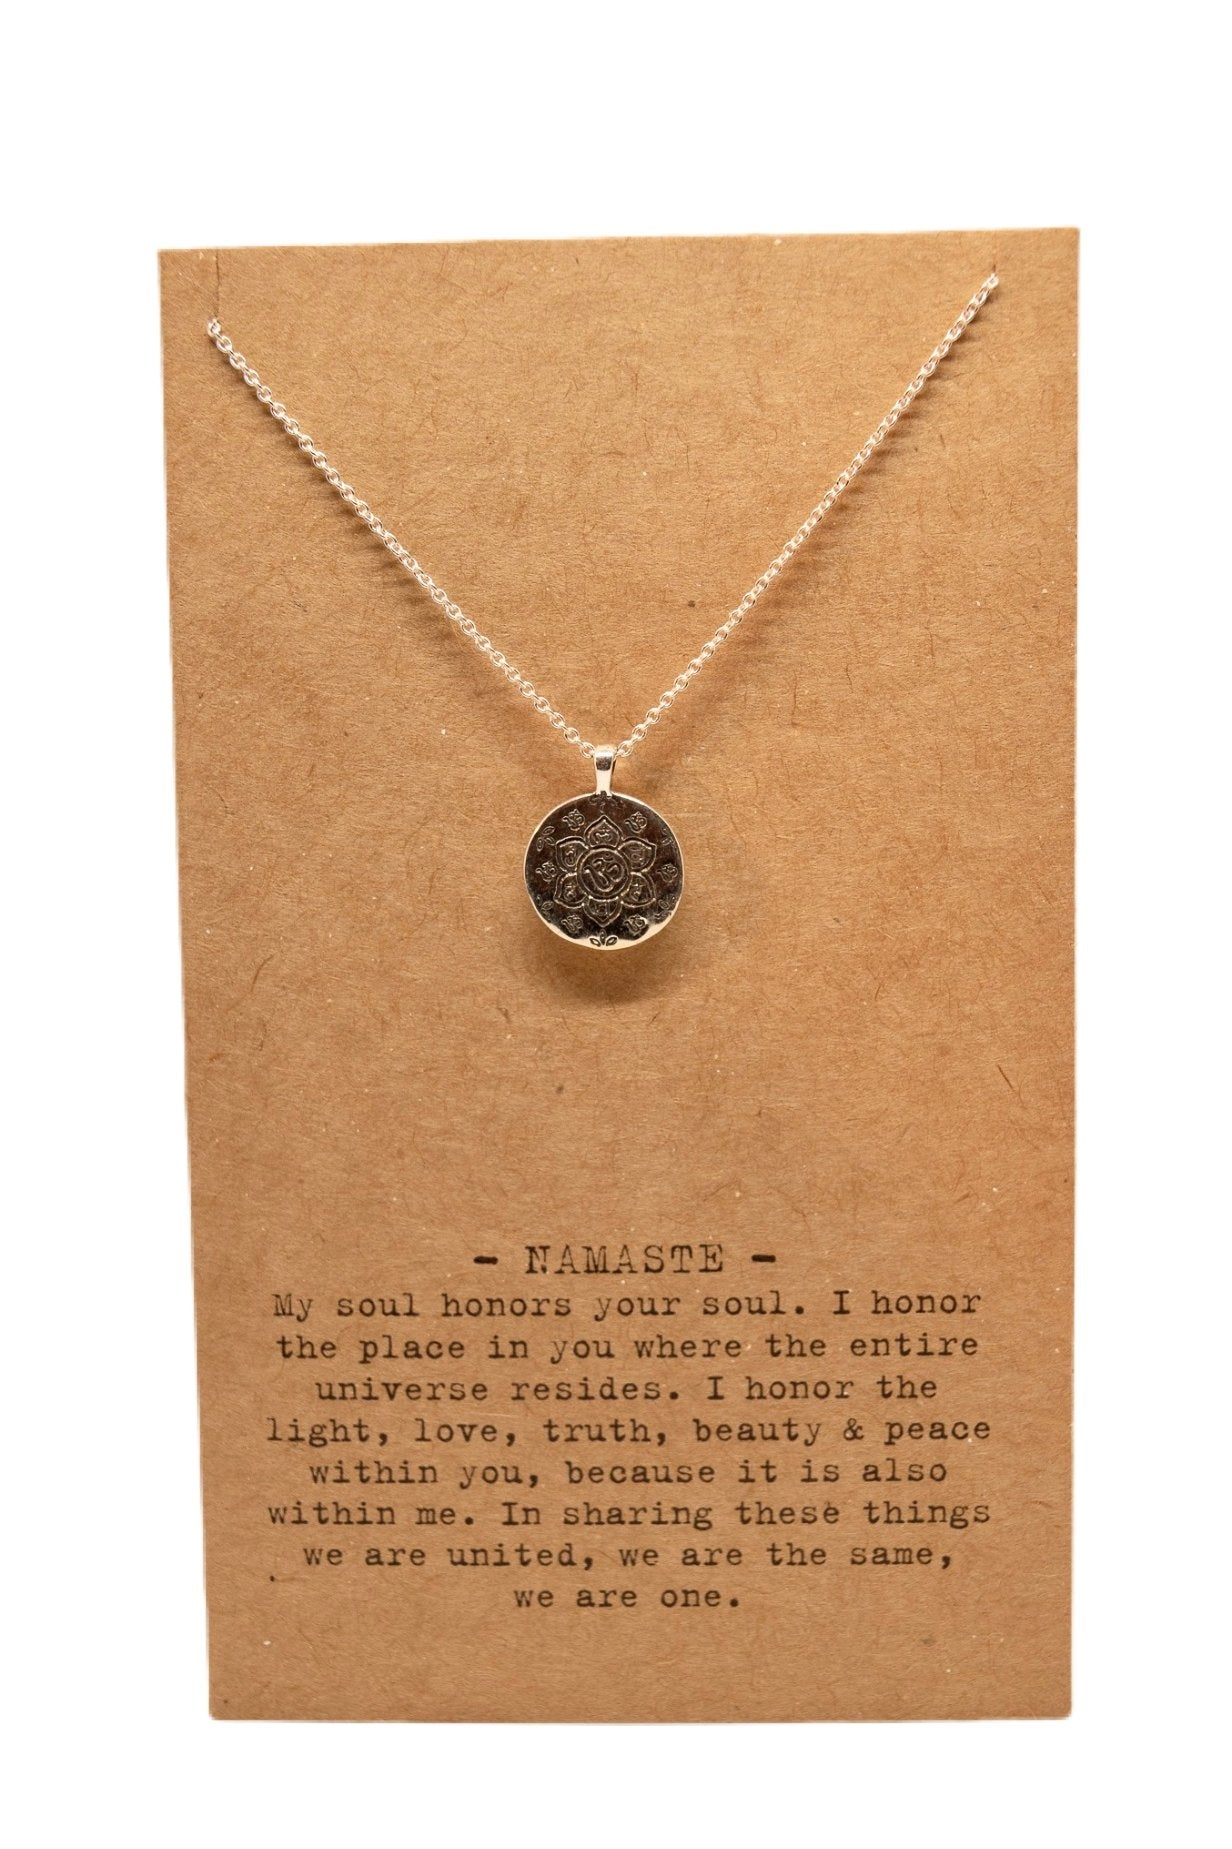 Air Mail Charm Necklace - Scroll to view the 8 styles - Inspired Evanston